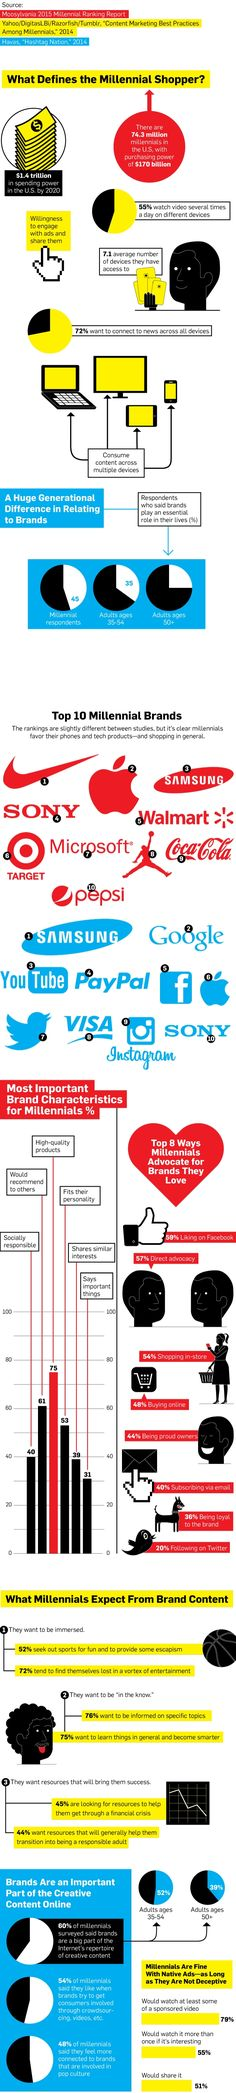 Millennial Shoppers Like Facebook, Twitter, Brands and Even Ads [INFOGRAPHIC]